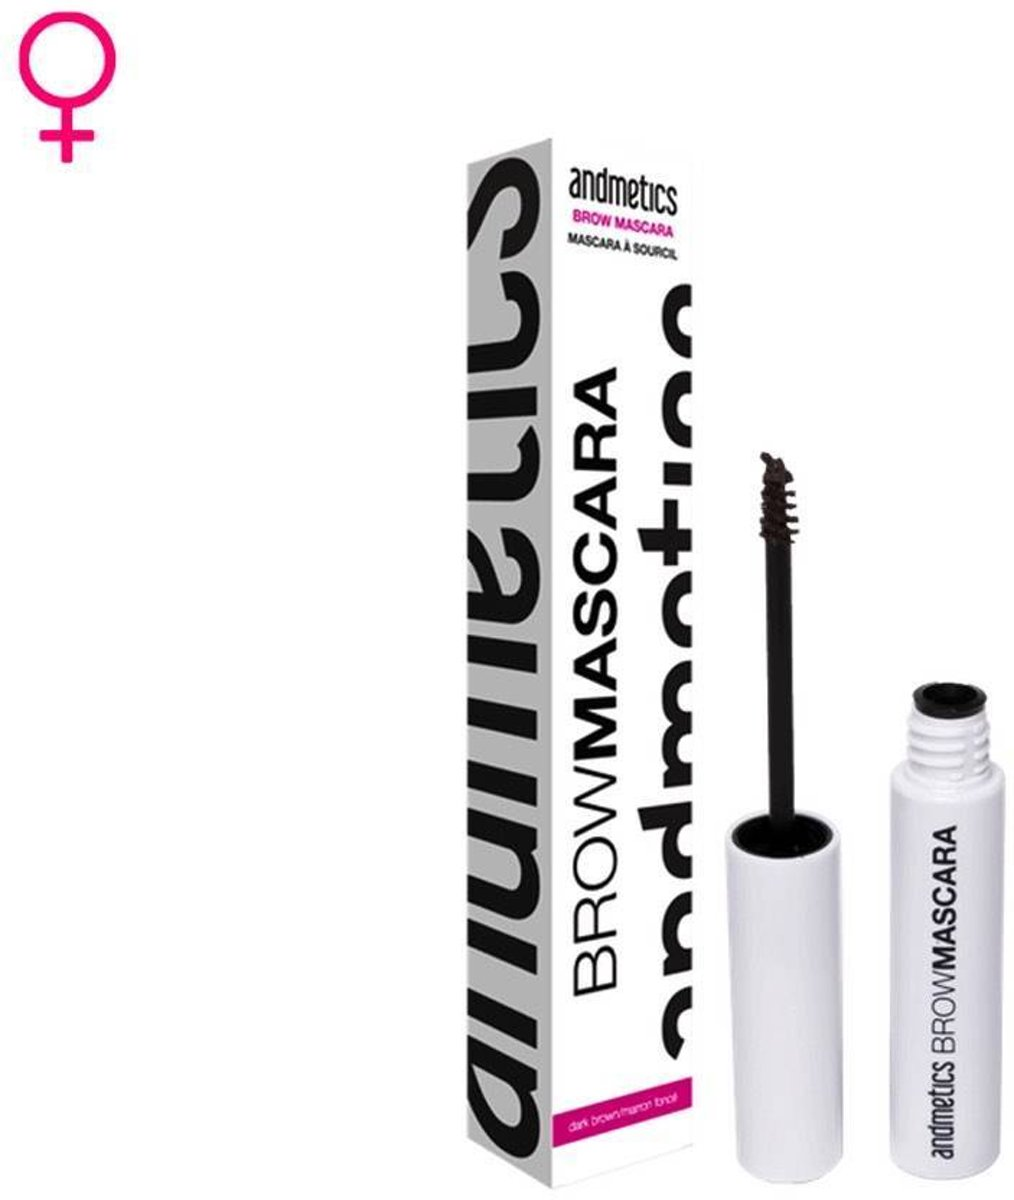 Brow Mascara 4ml